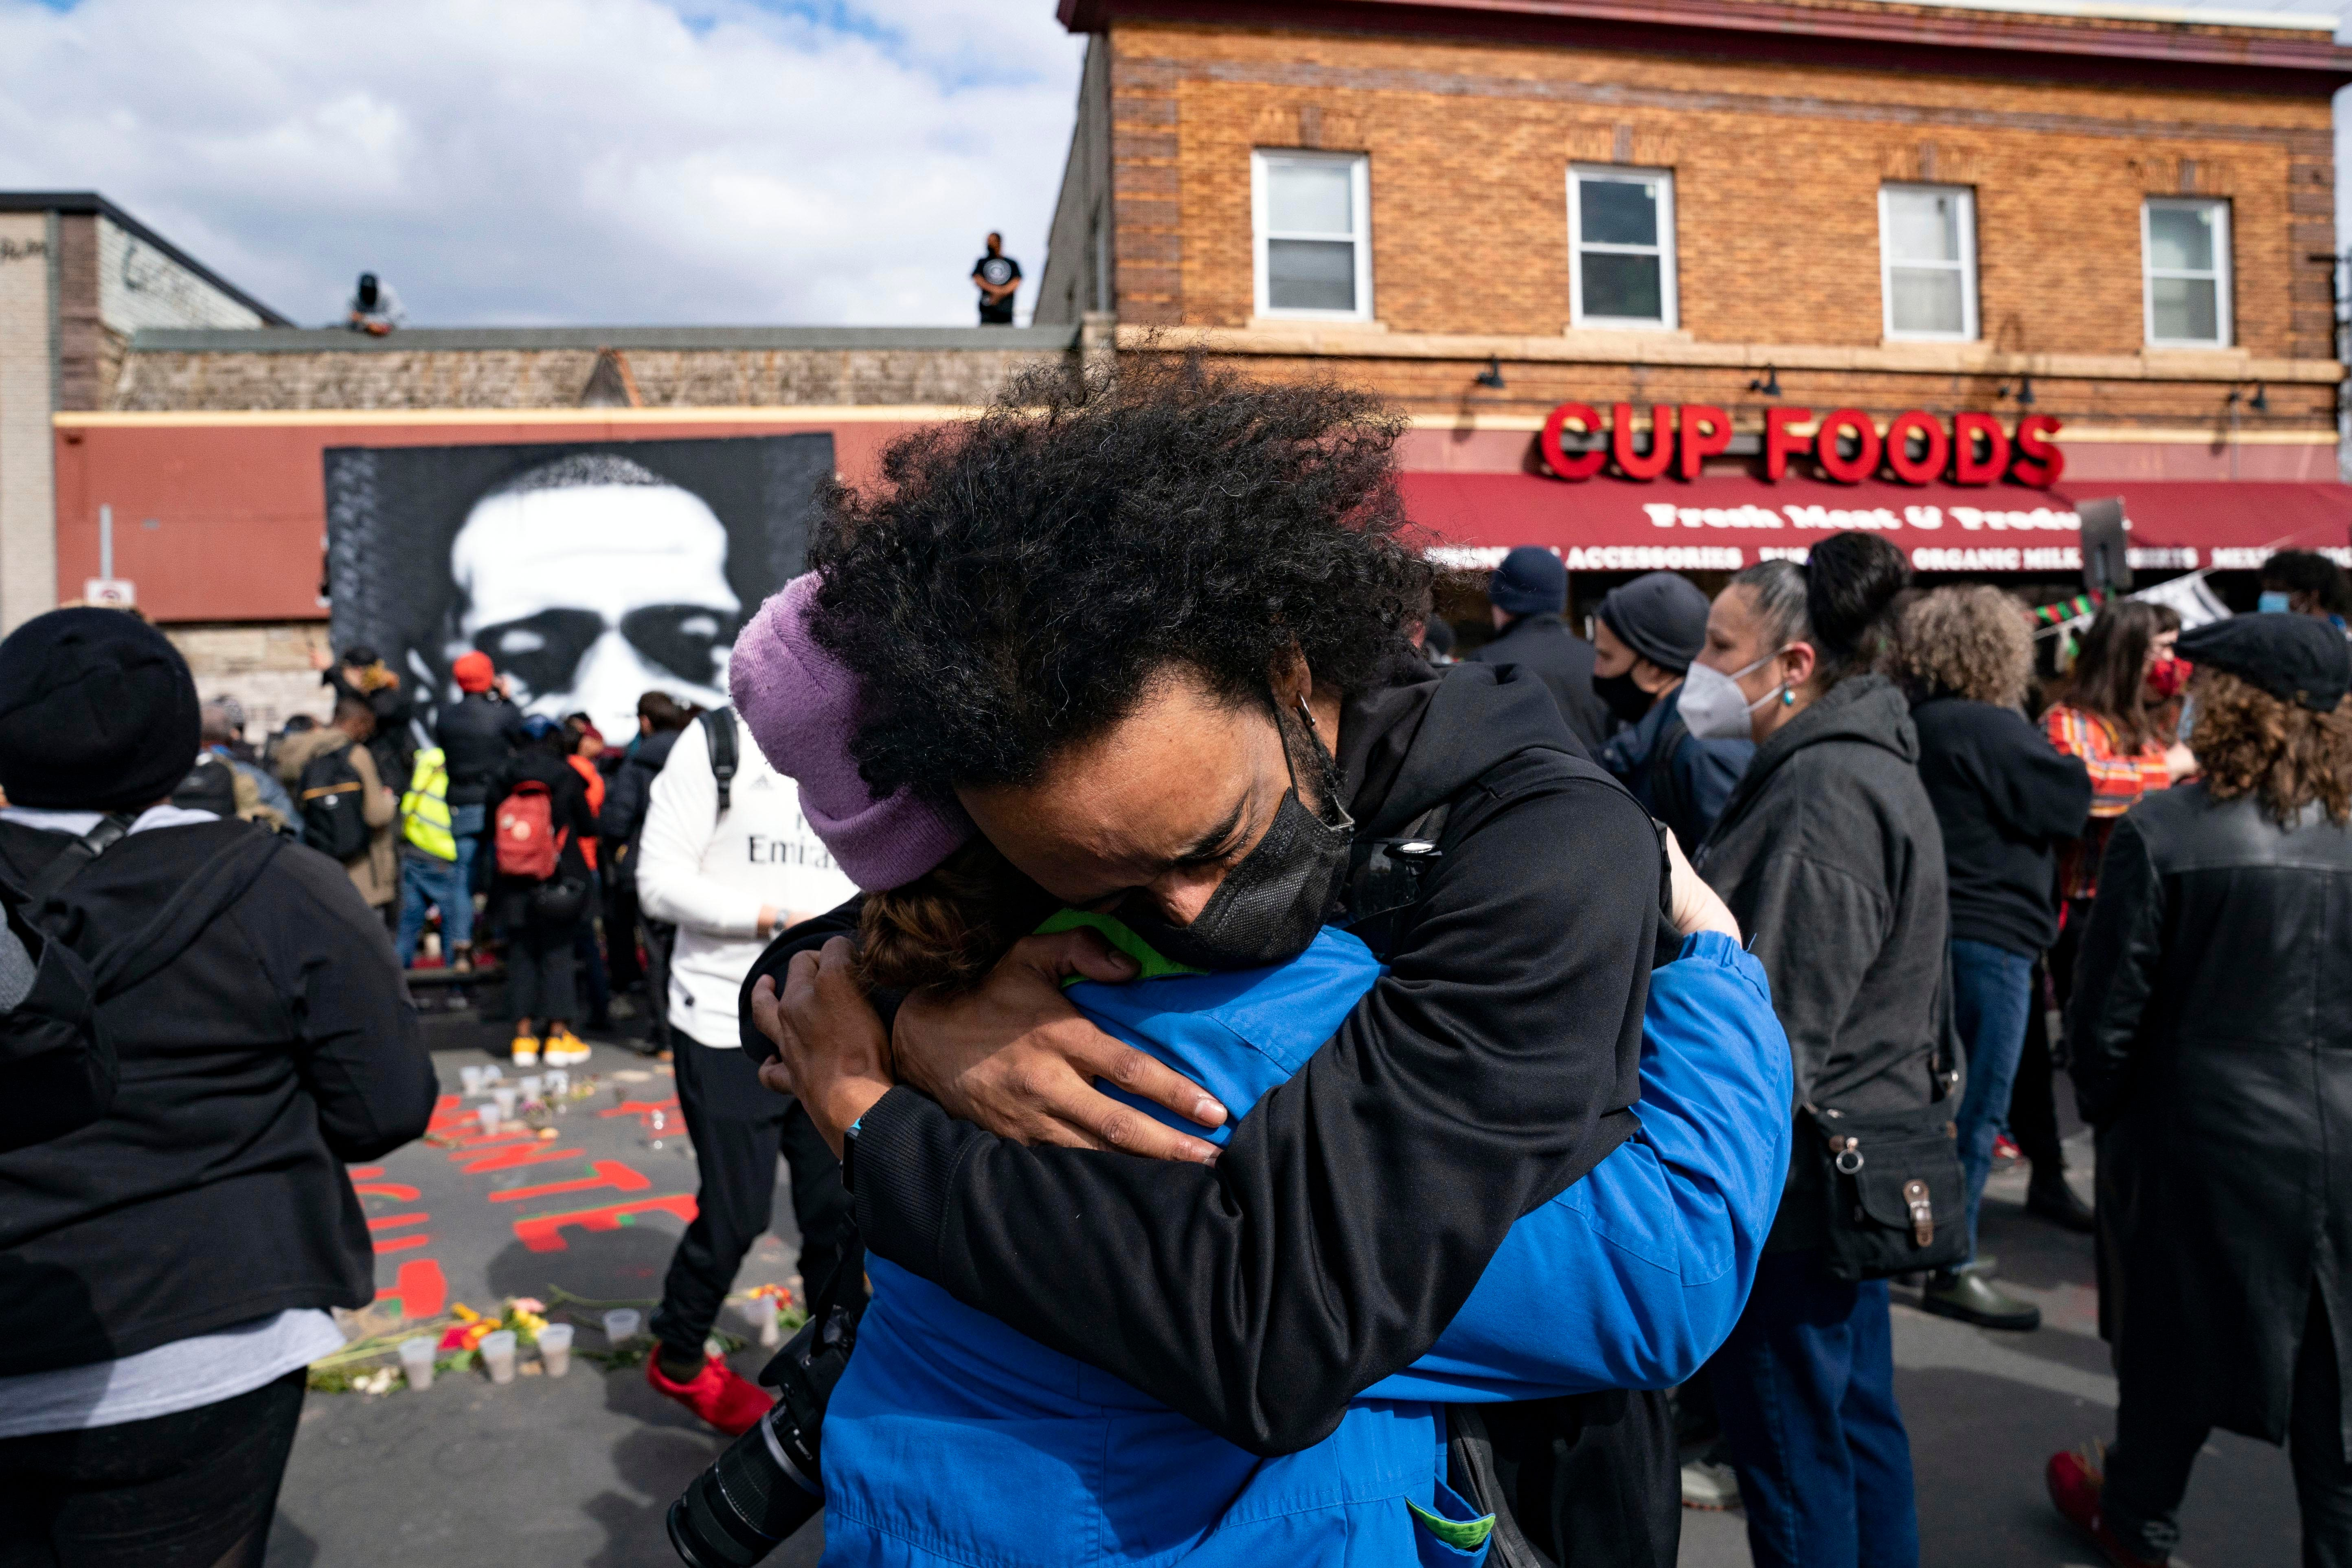 Nic Hernandez and Emma Ruddock hug in celebration after hearing the verdict of Derek Chauvin at George Floyd Square on April 20, 2021 in Minneapolis.